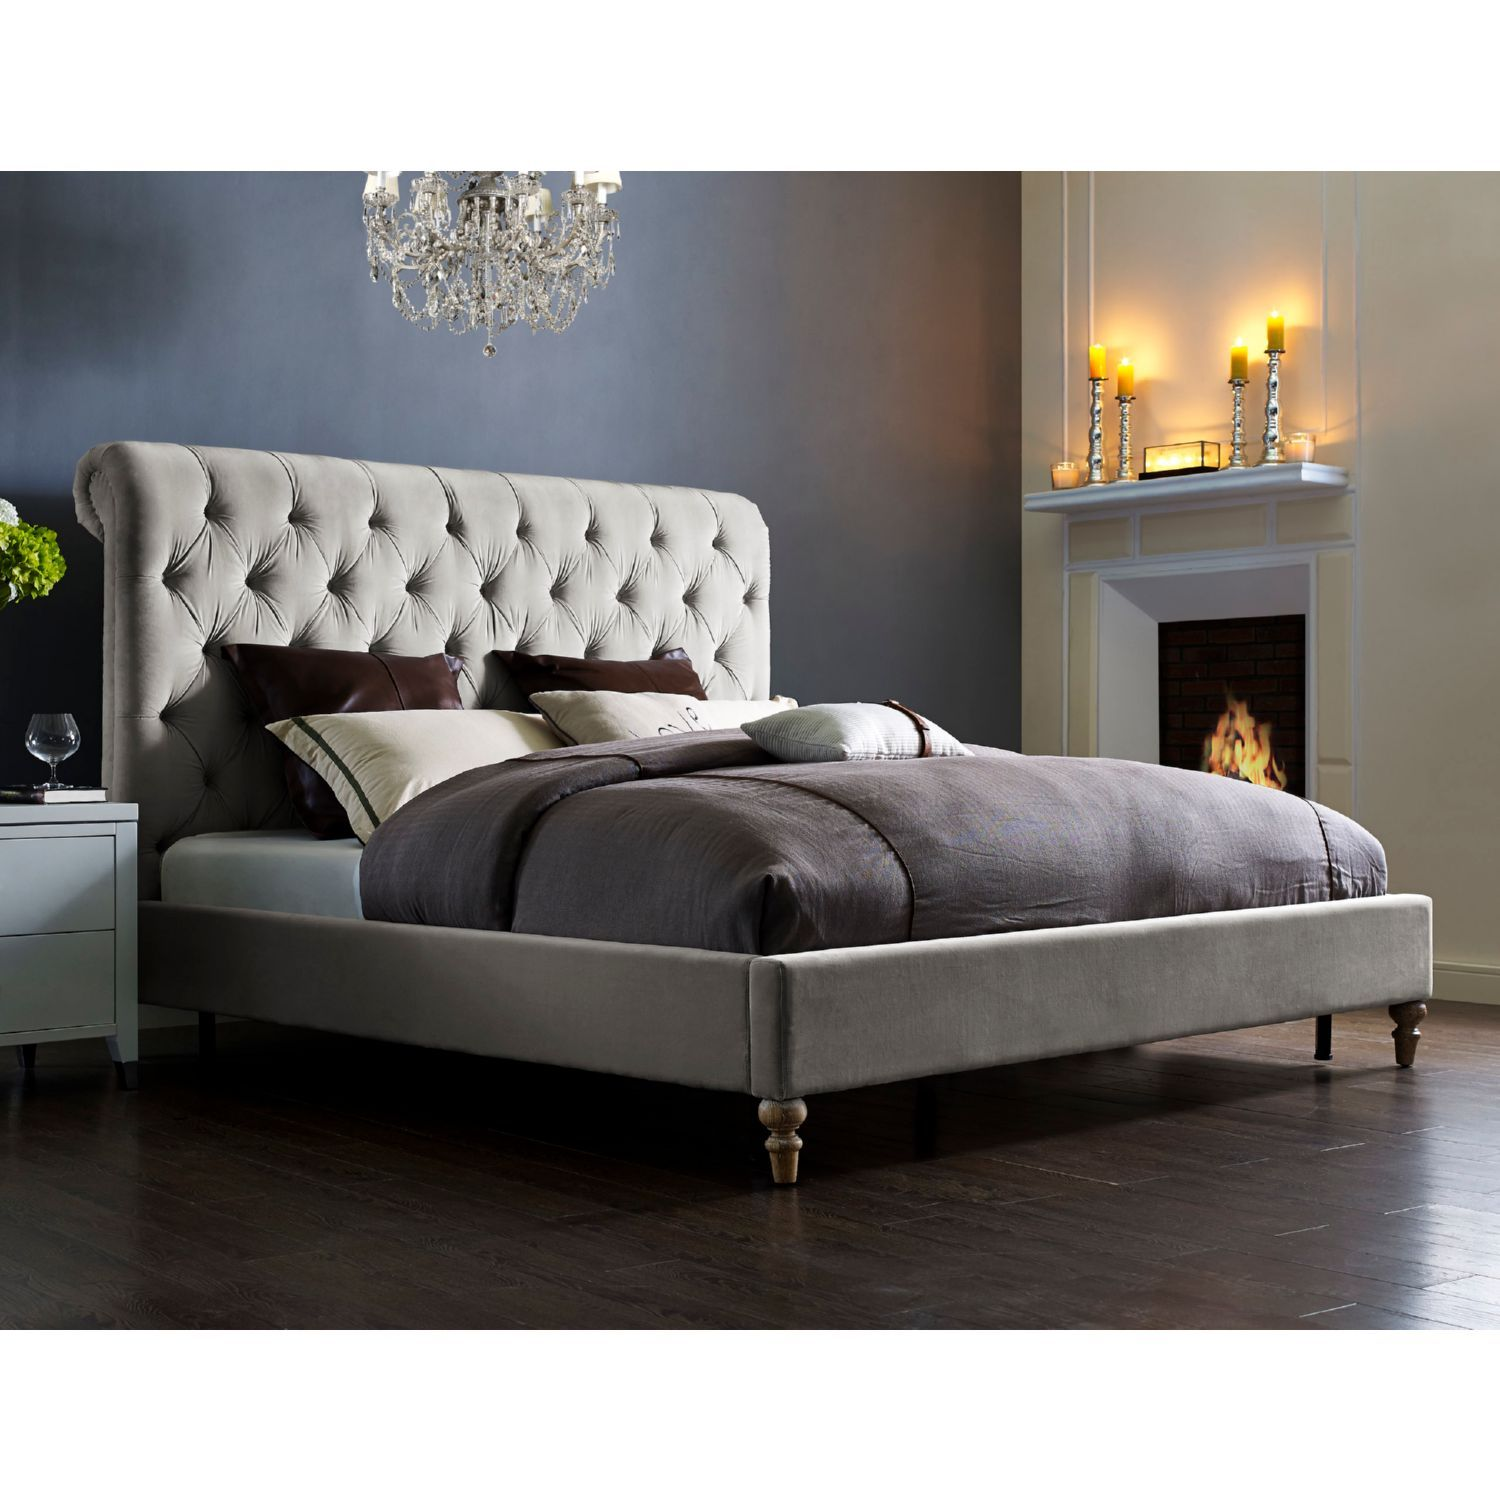 tov furniture putnam queen bed in light grey tufted velvet w reclaimed wood legs - Tov Furniture